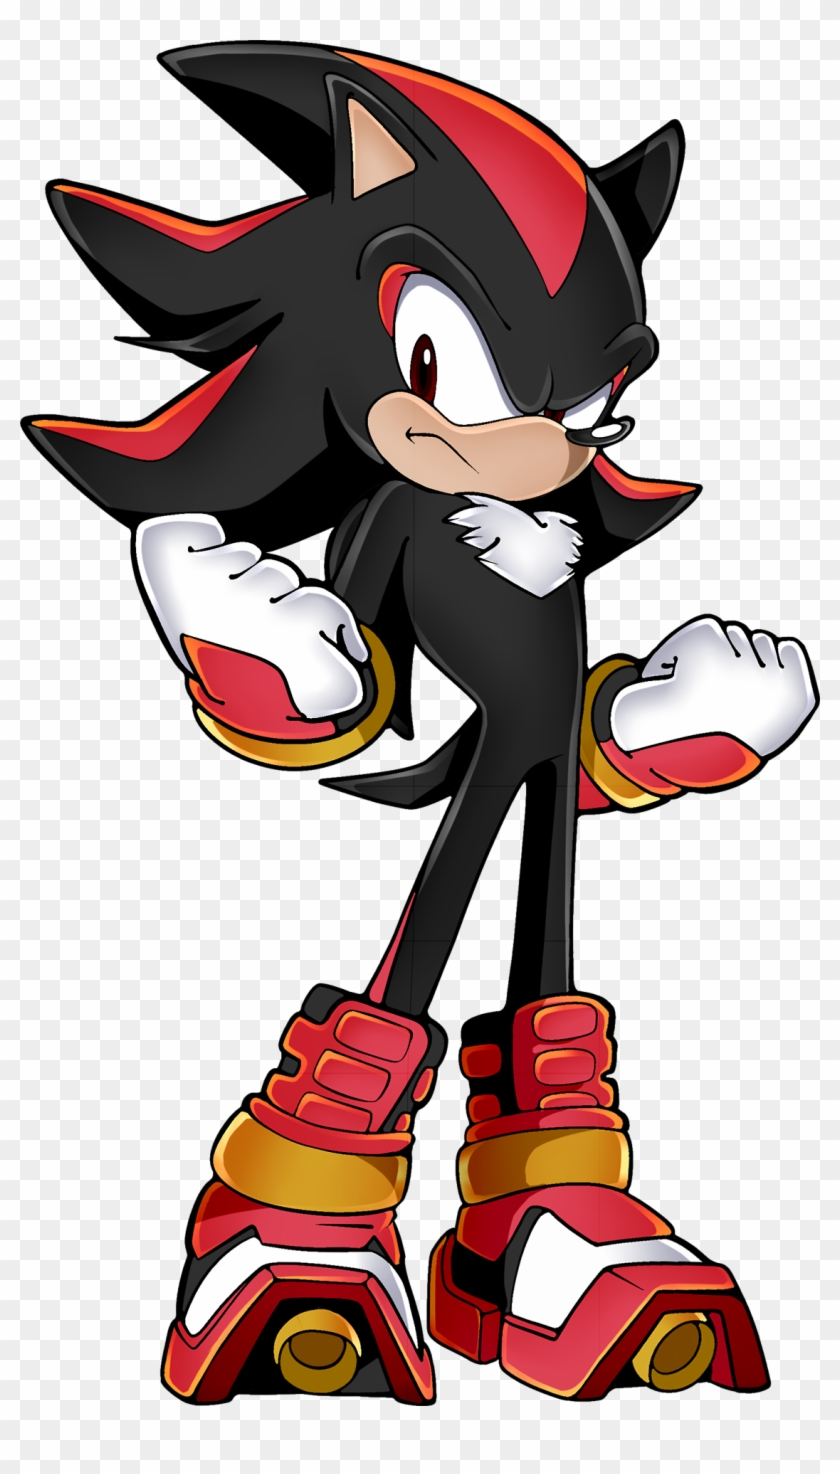 Shadow The Hedgehog Sonic Boom Free Transparent Png Clipart Images Download